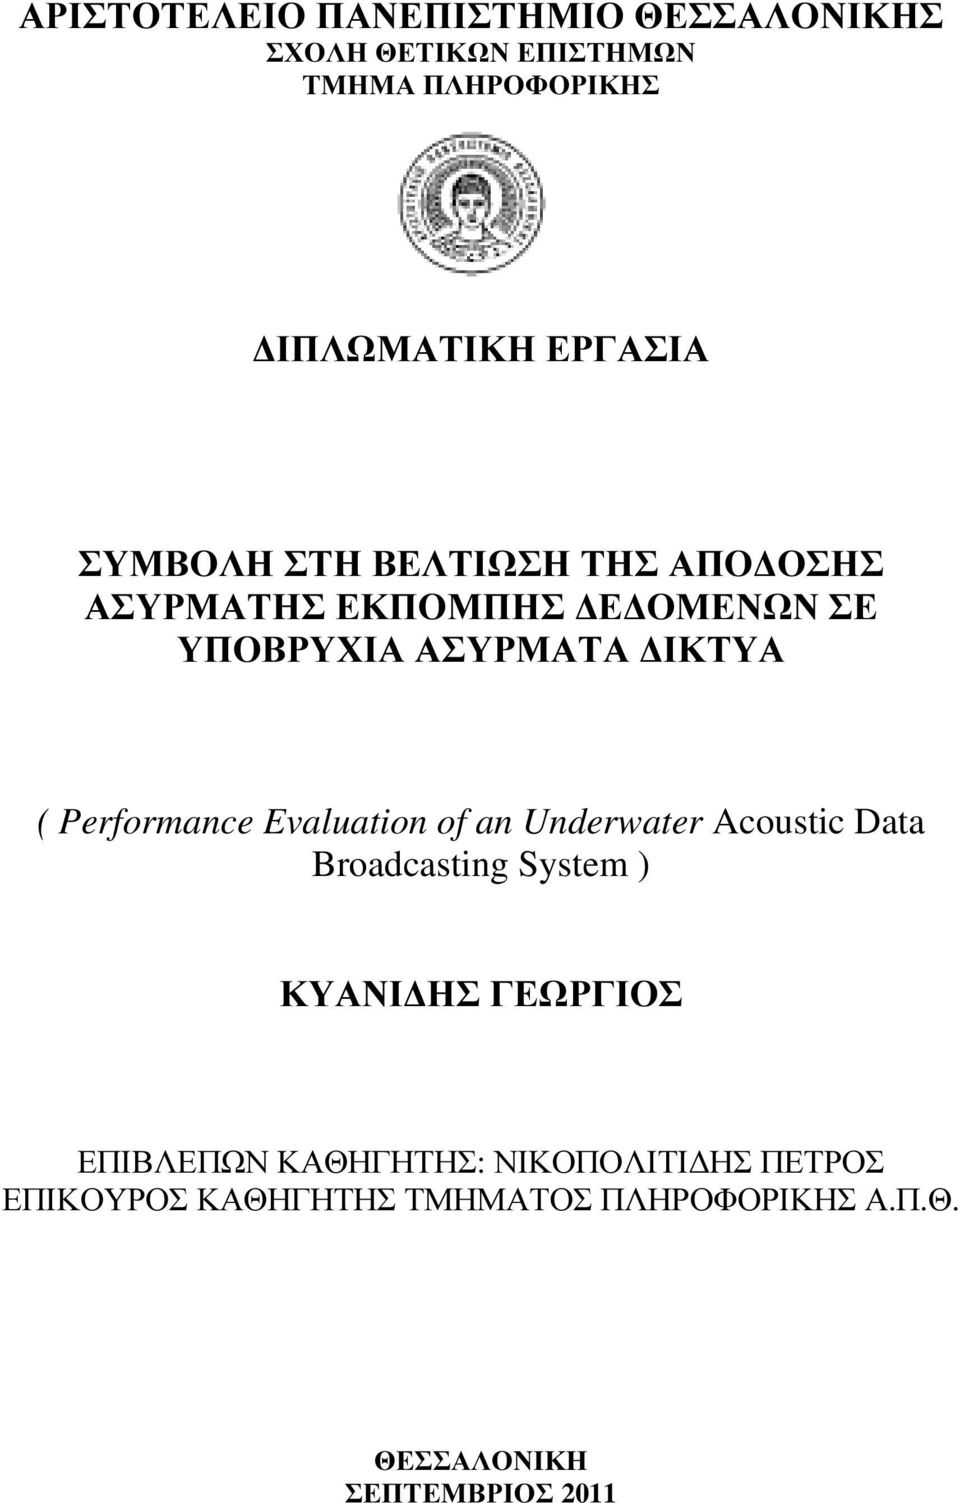 Performance Evaluaton of an Underwater Acoustc Data Broadcastng System ) ΚΥΑΝΙ ΗΣ ΓΕΩΡΓΙΟΣ ΕΠΙΒΛΕΠΩΝ